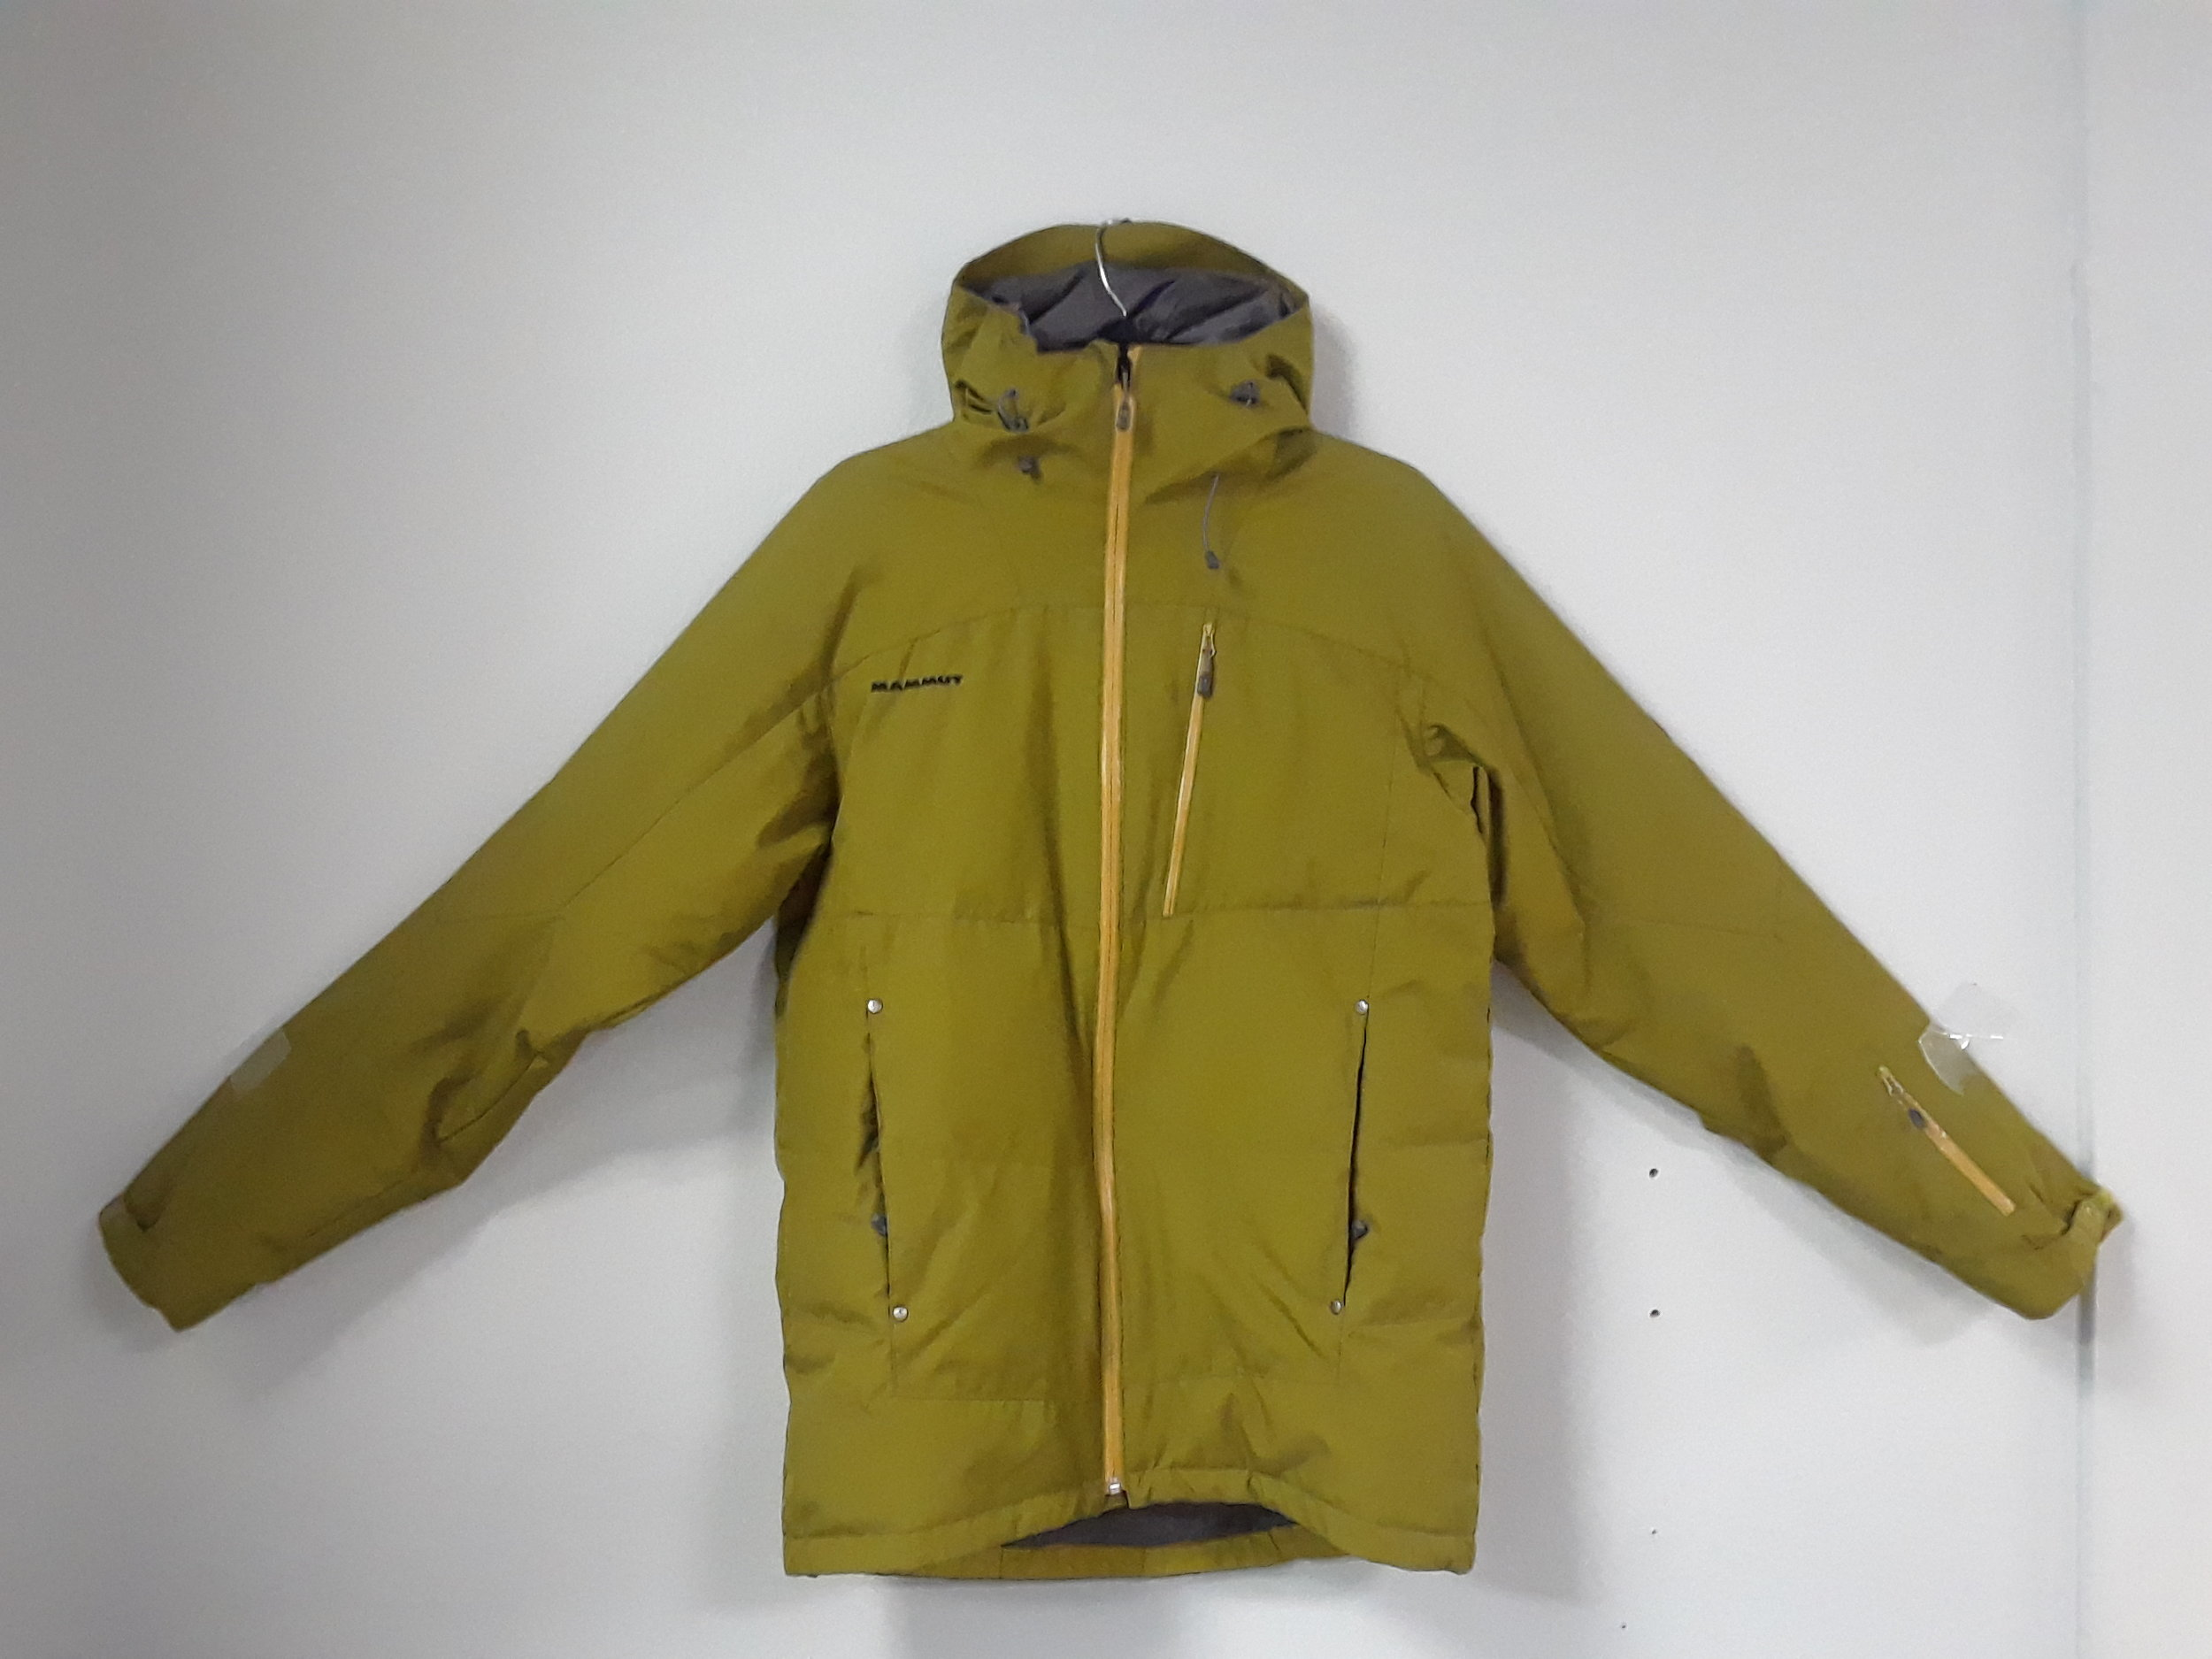 Here's another great resort jacket for those frigid days. The Mammut Cruise with 650 down filling will give you the ratio of warmth and waterproofing that you need. We have this $400 jacket listed at $199 and the size is a men's medium.